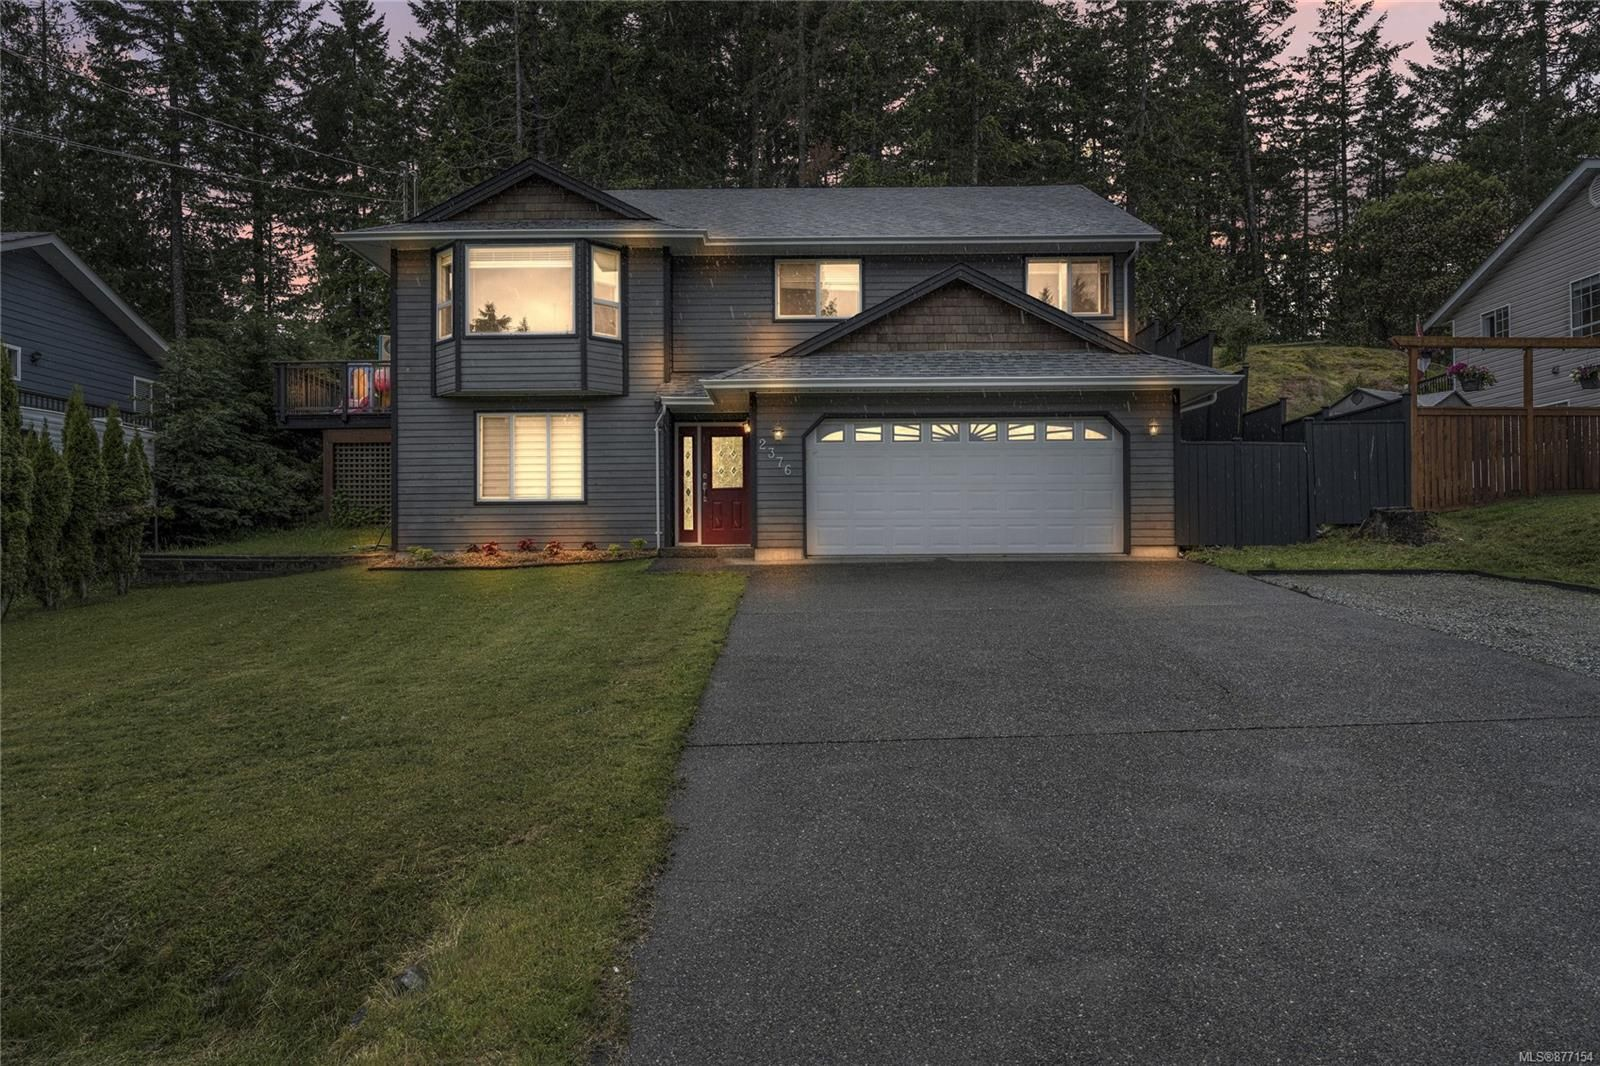 Photo 34: Photos: 2376 Terrace Rd in : ML Shawnigan House for sale (Malahat & Area)  : MLS®# 877154